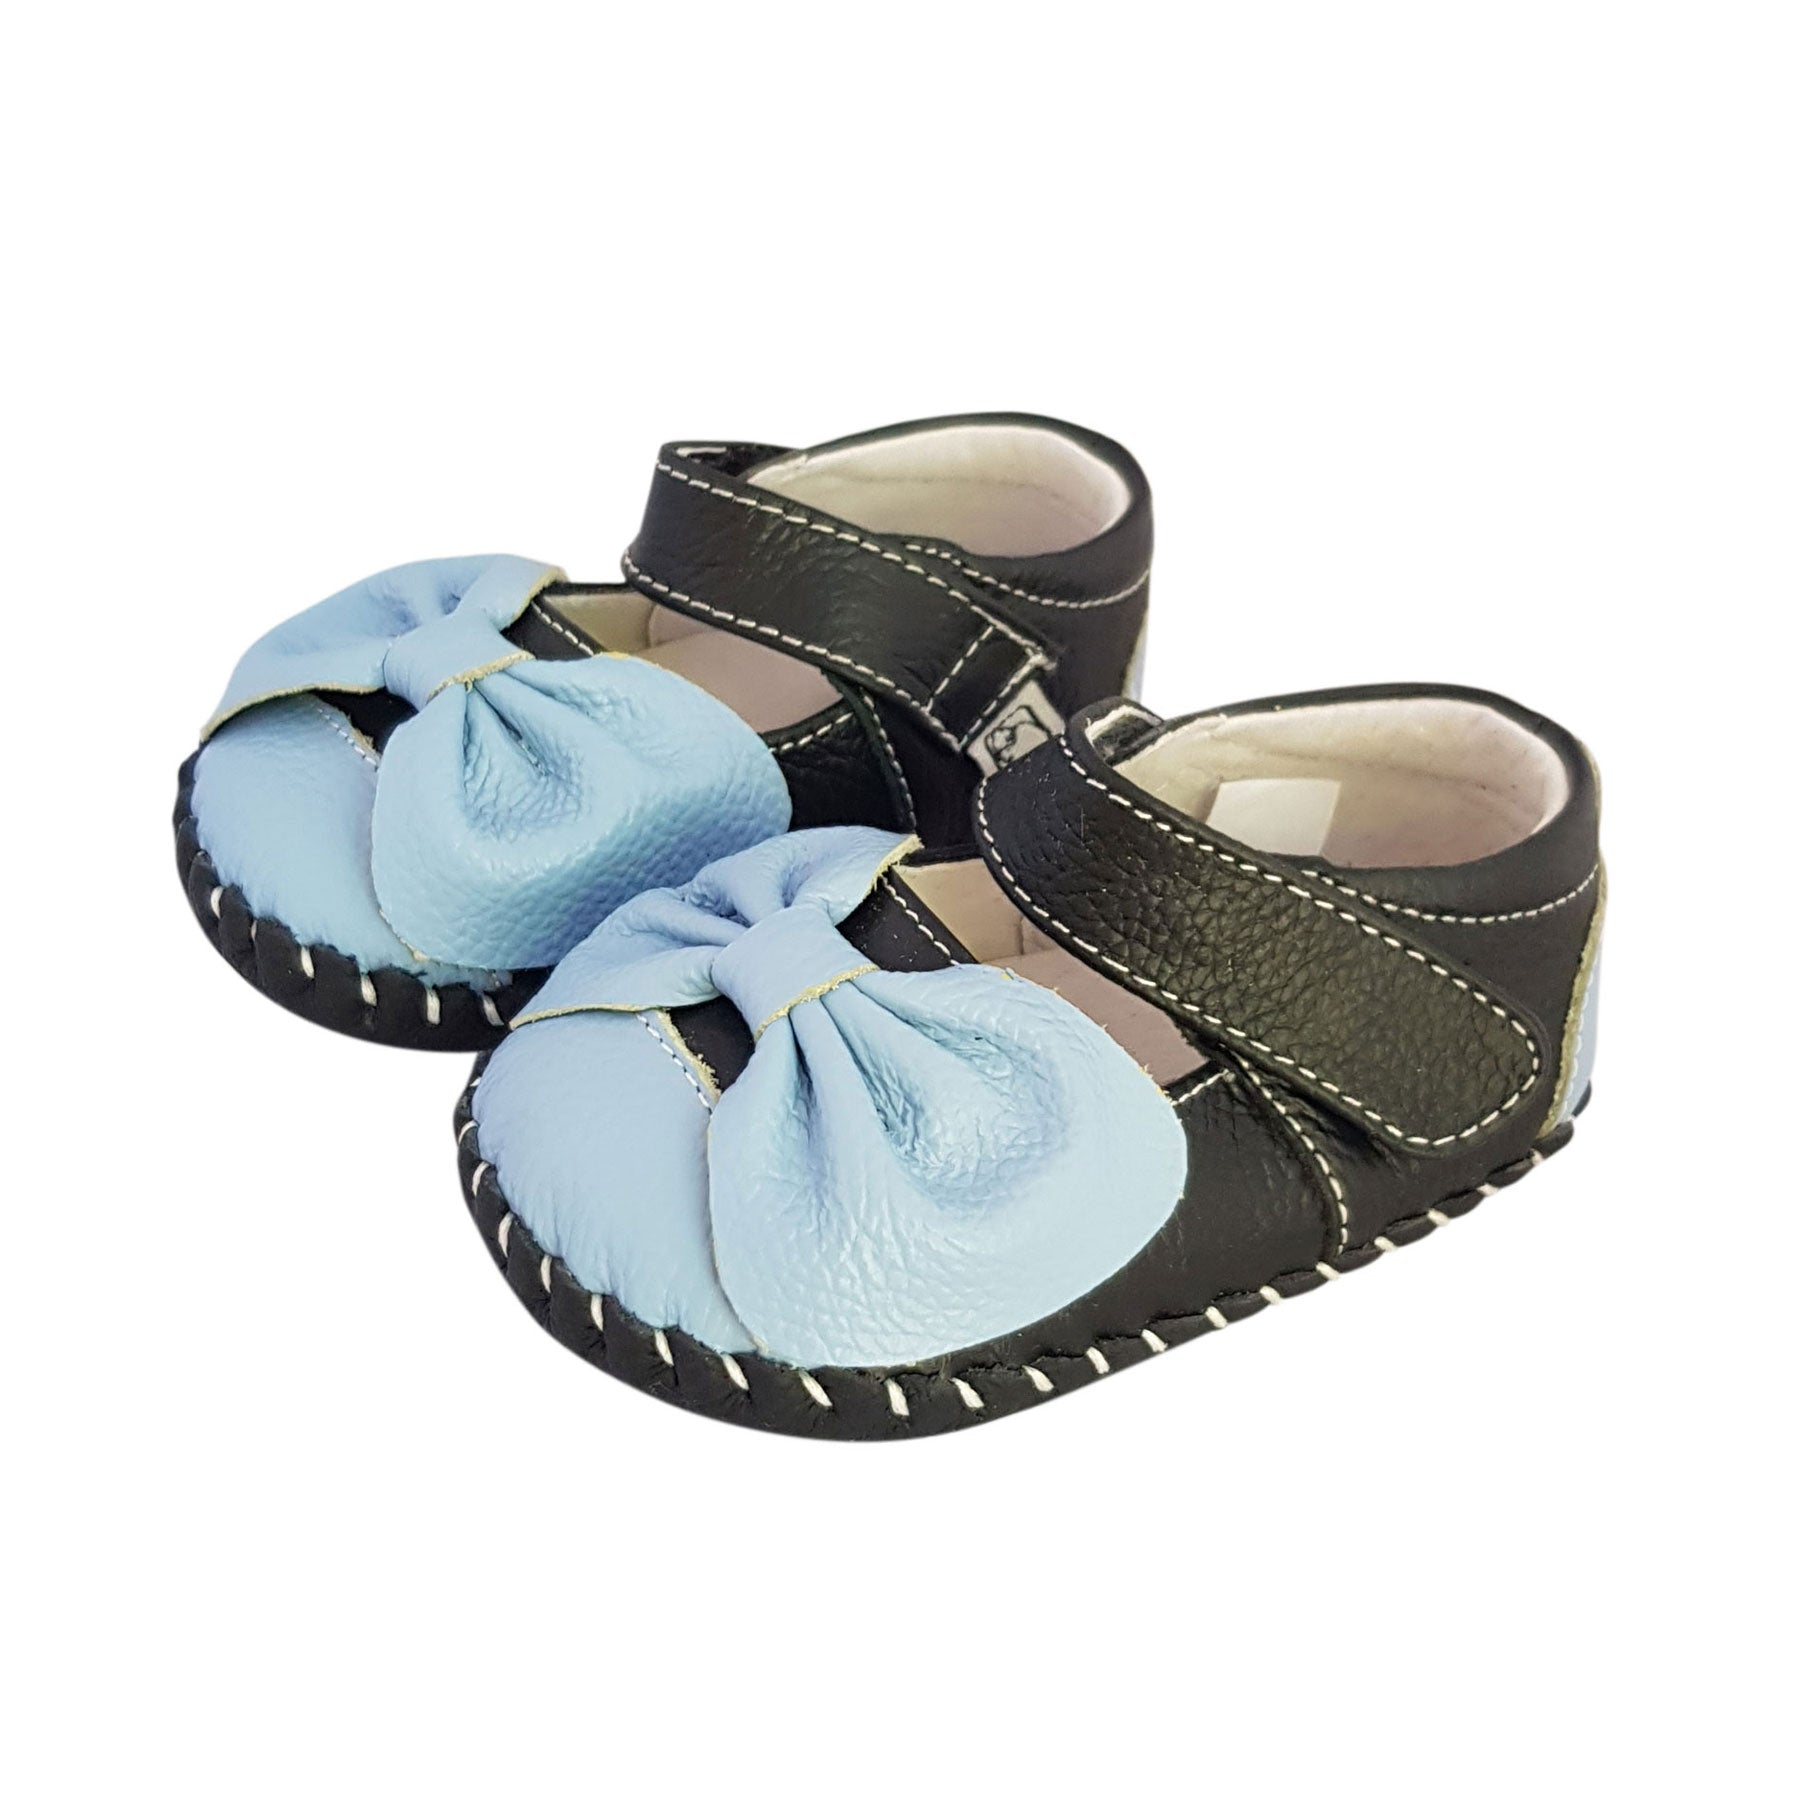 b61f4fee3b ... Load image into Gallery viewer, 2FeetTall | Girls leather baby shoes  with bow